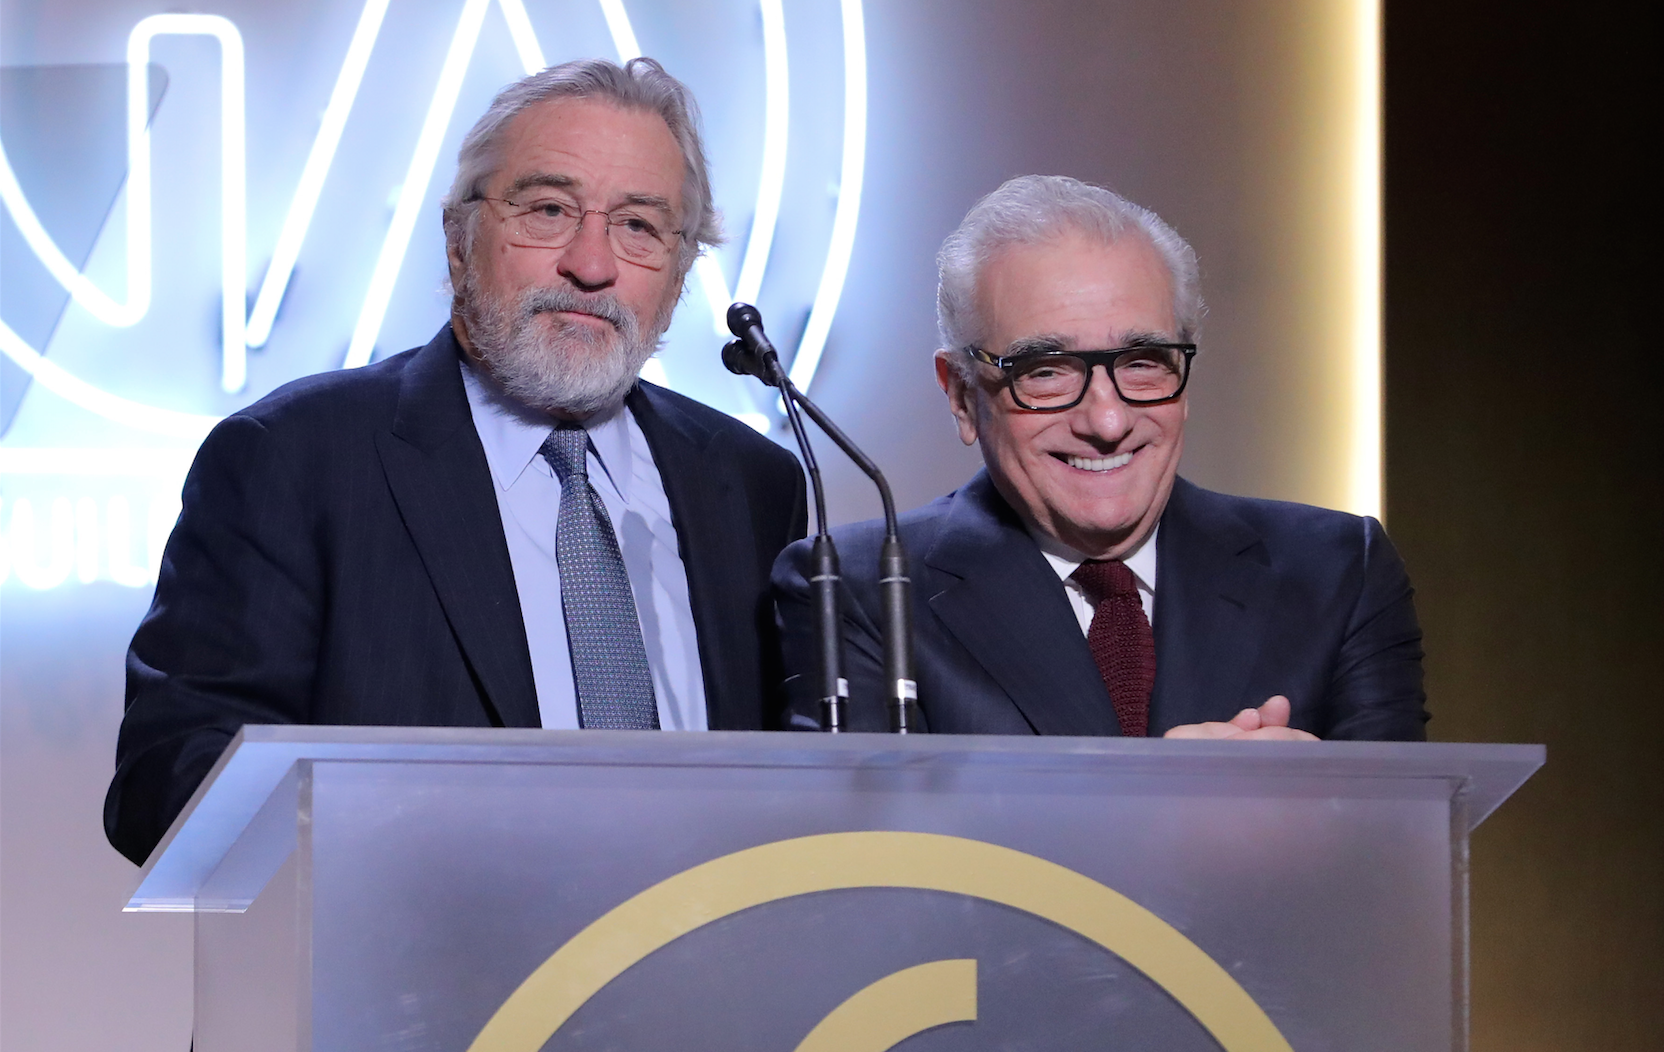 Martin Scorsese and Robert De Niro